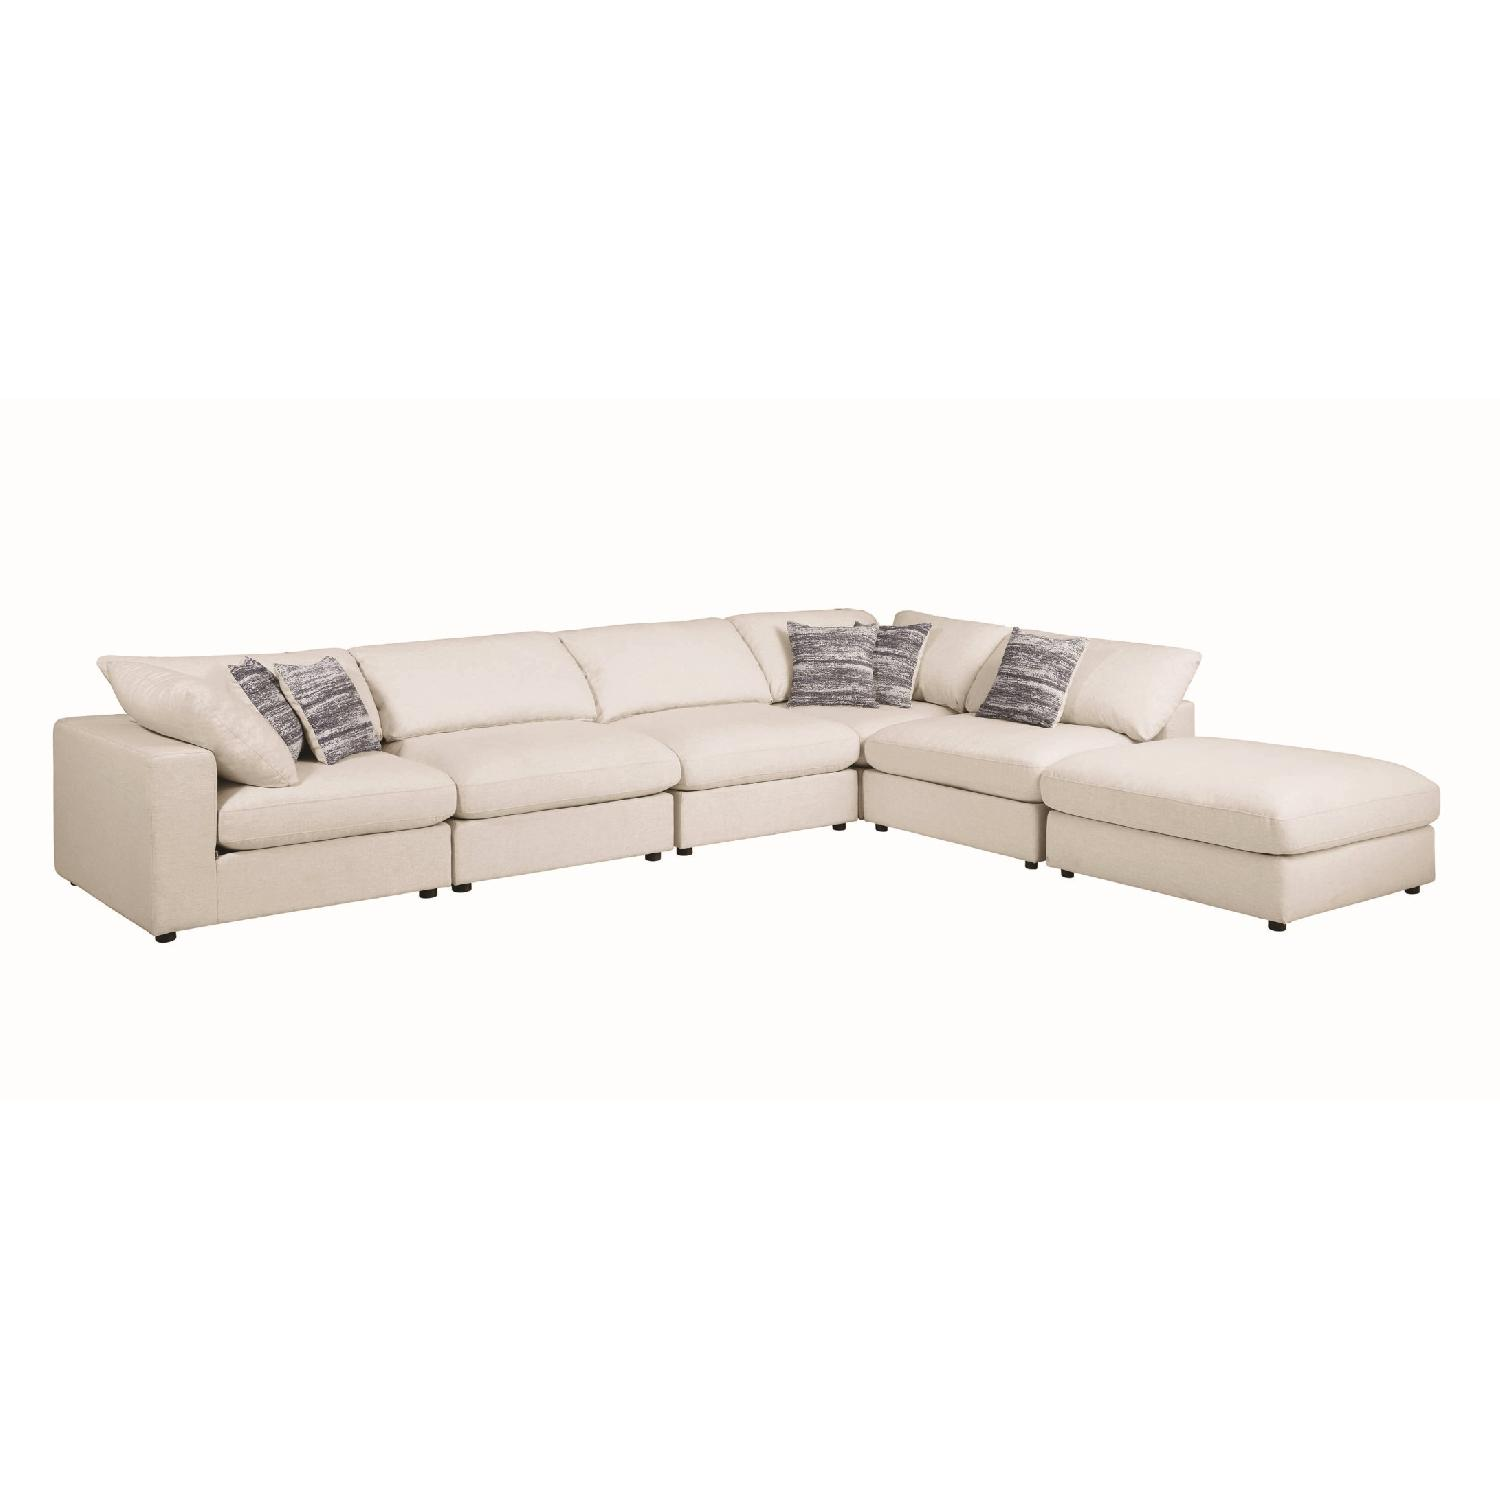 Modern Daybed w/ Trundle Upholstered in Light Grey Fabric - image-7